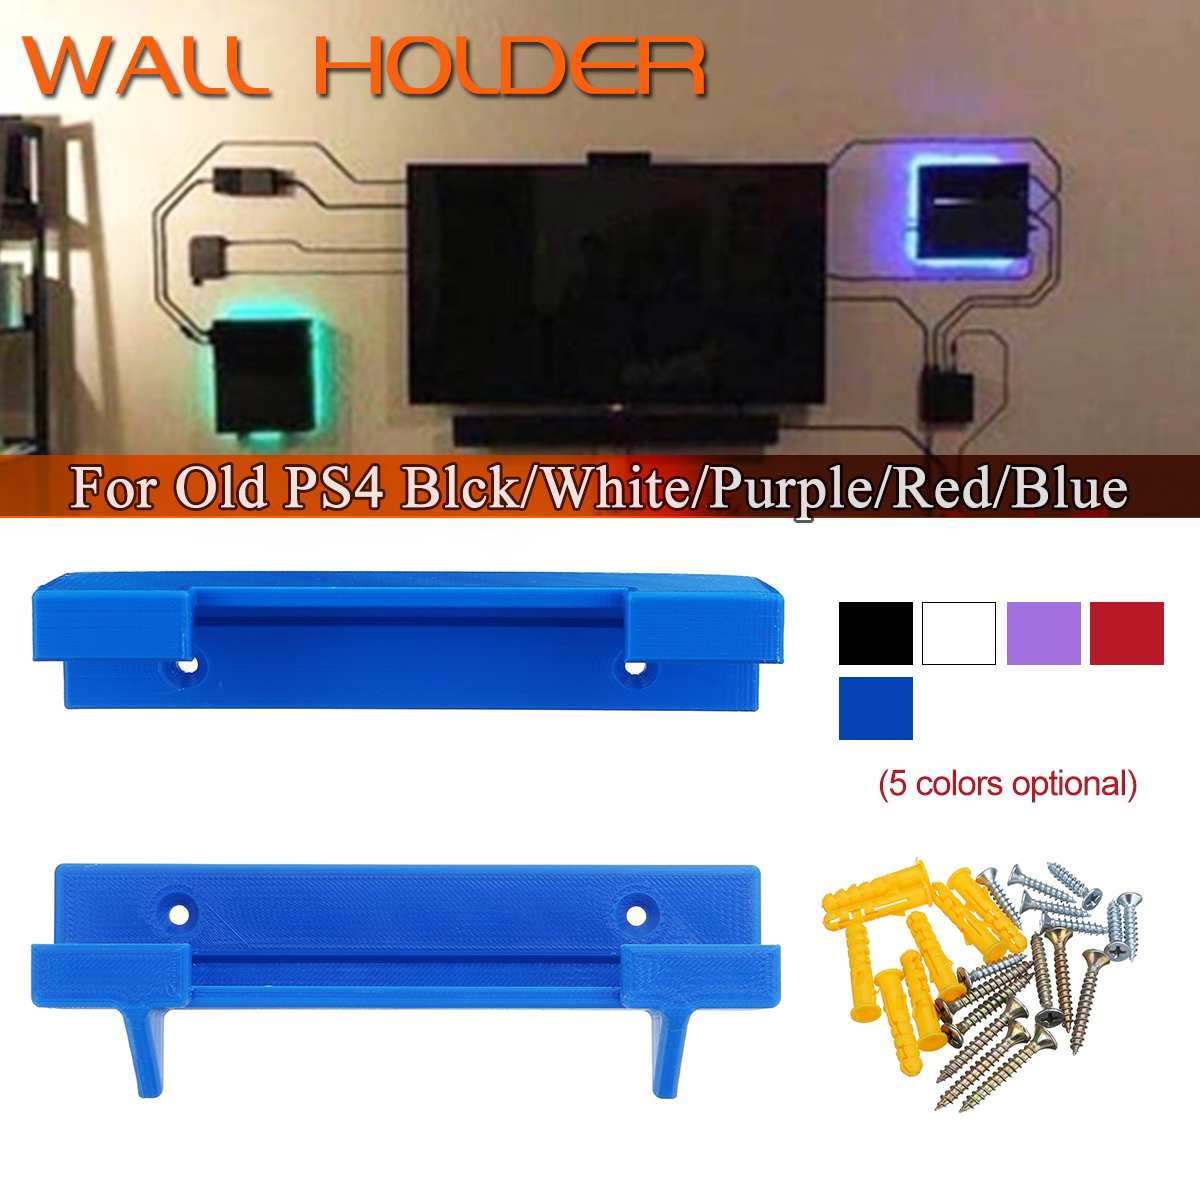 3D Print Wall Holder For PS4 Old For Playstation 4 Controller Game Pad Dock Gamepad Stand Holder 3D Printed With Screws